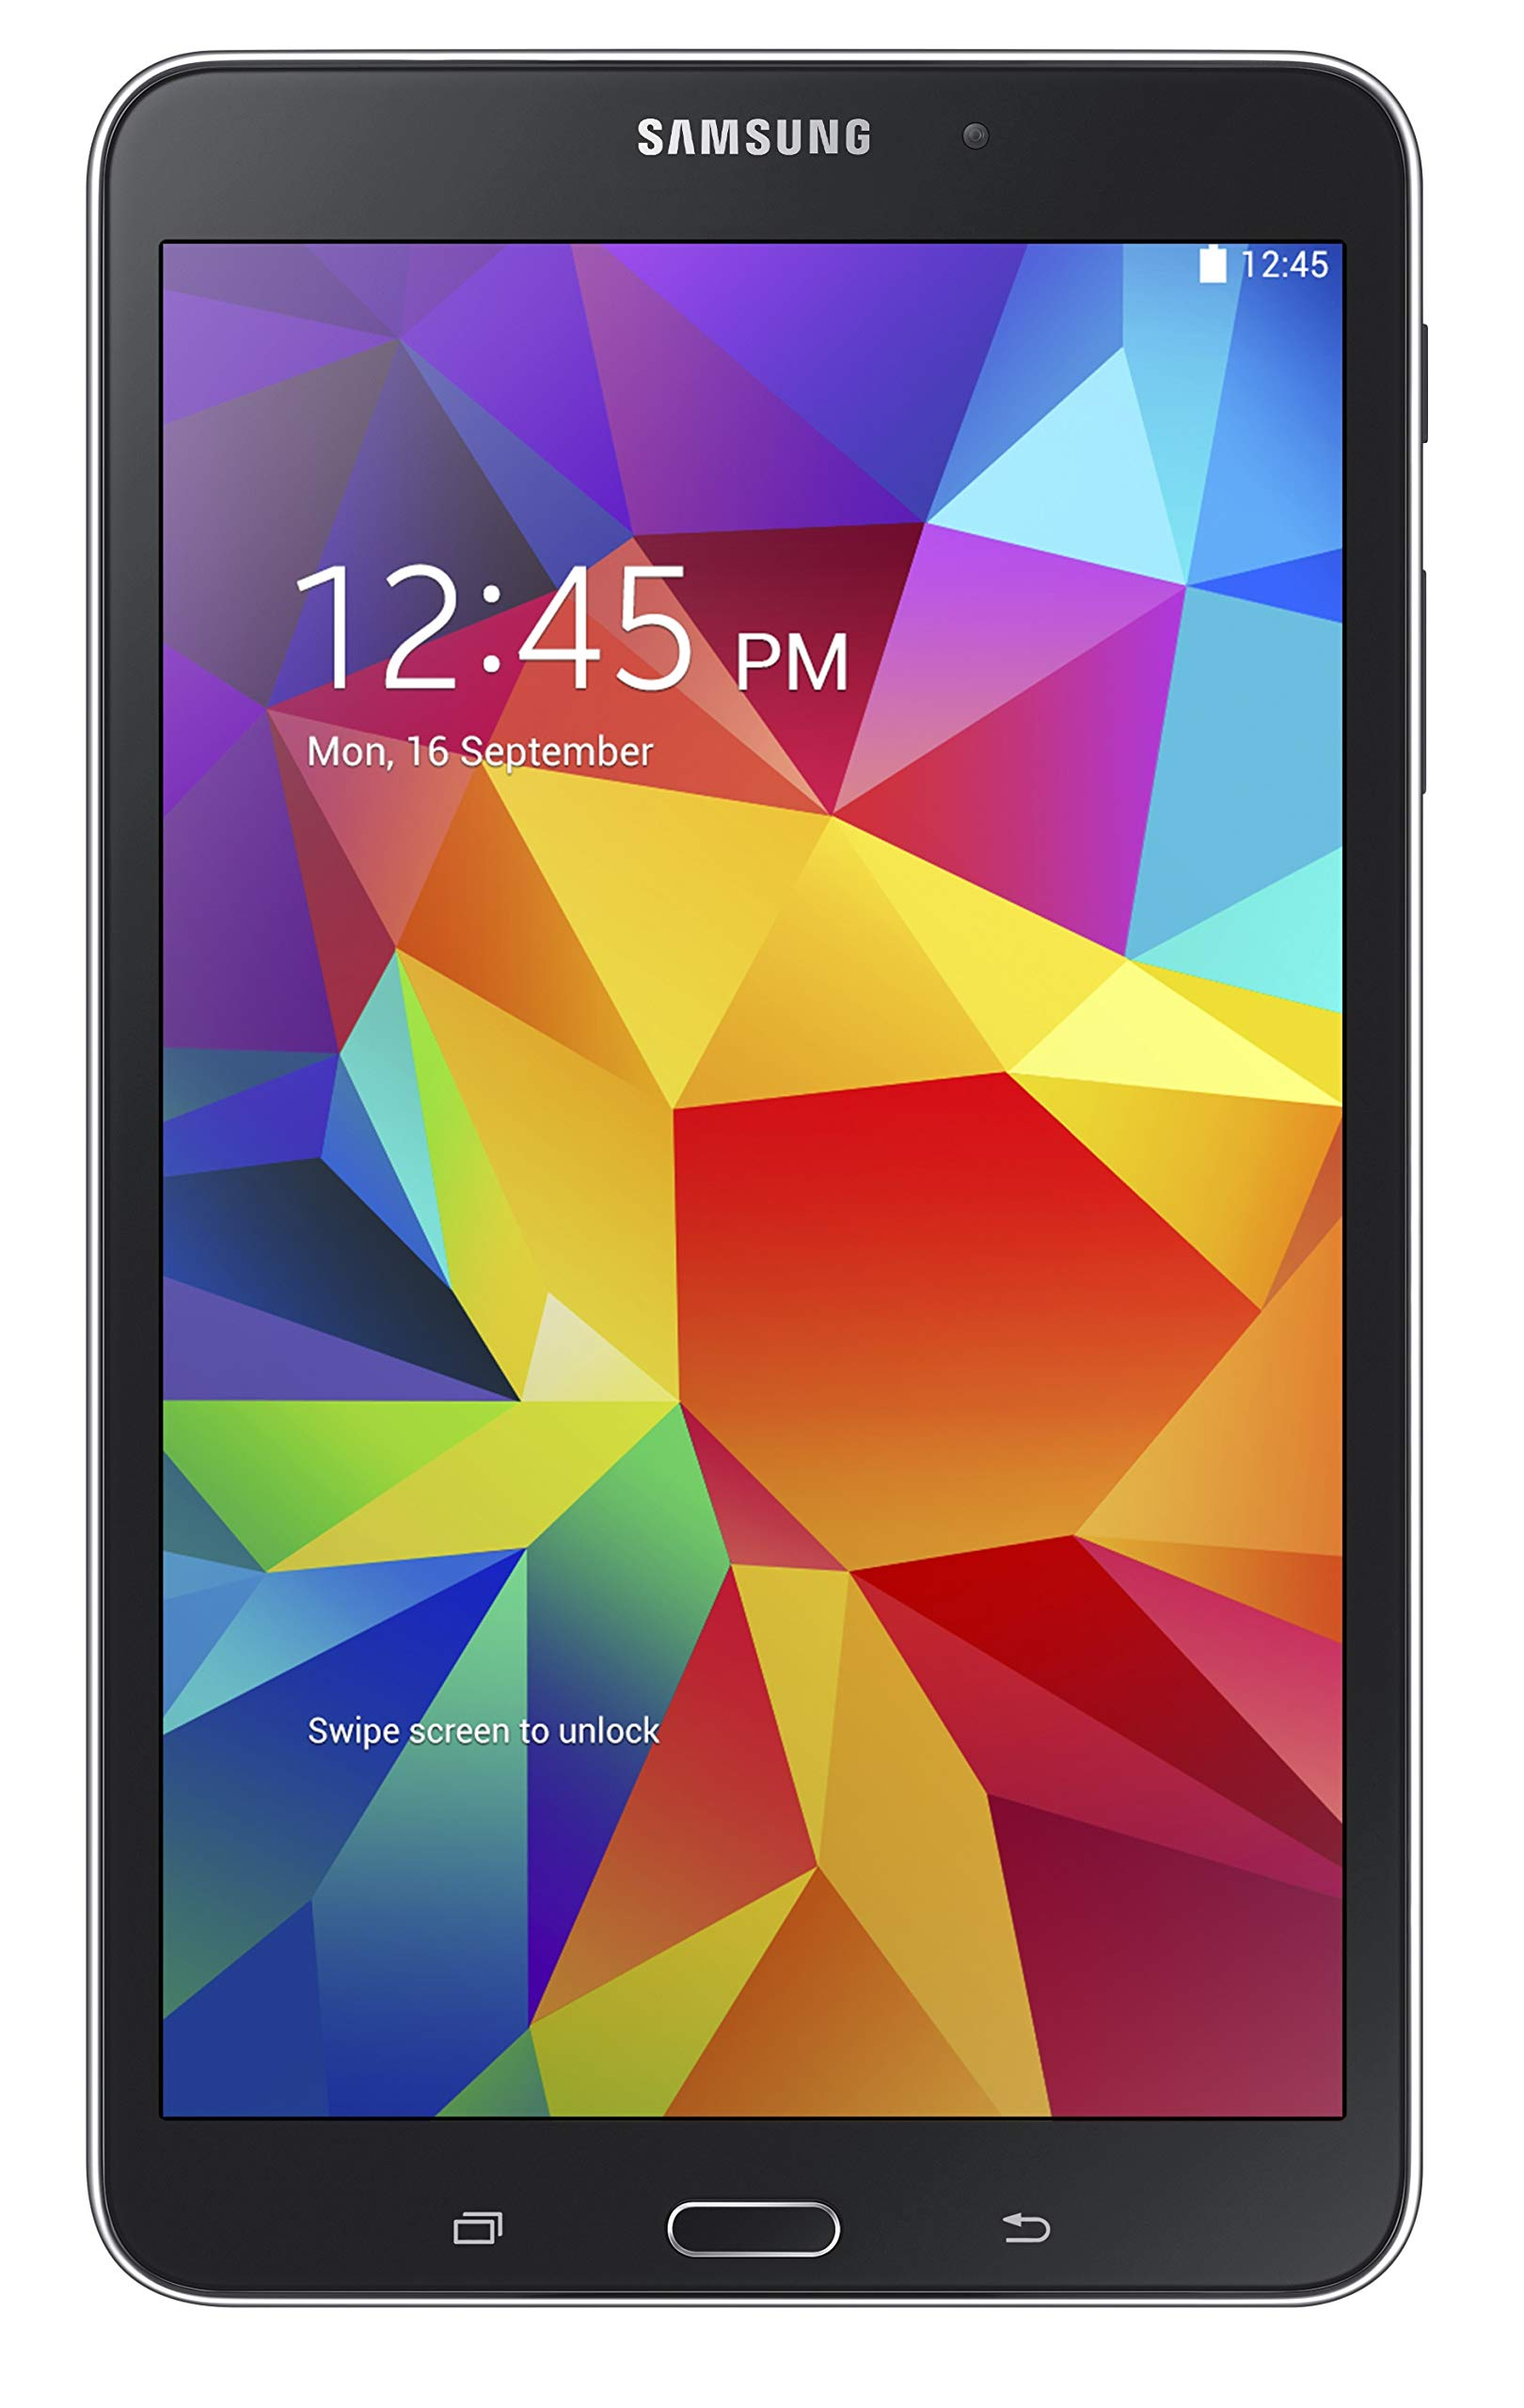 Samsung Galaxy Tab 4 8'' Touchscreen WiFi + 4G LTE Verizon Tablet 16GB Dual Camera, Android OS - Black (Renewed)